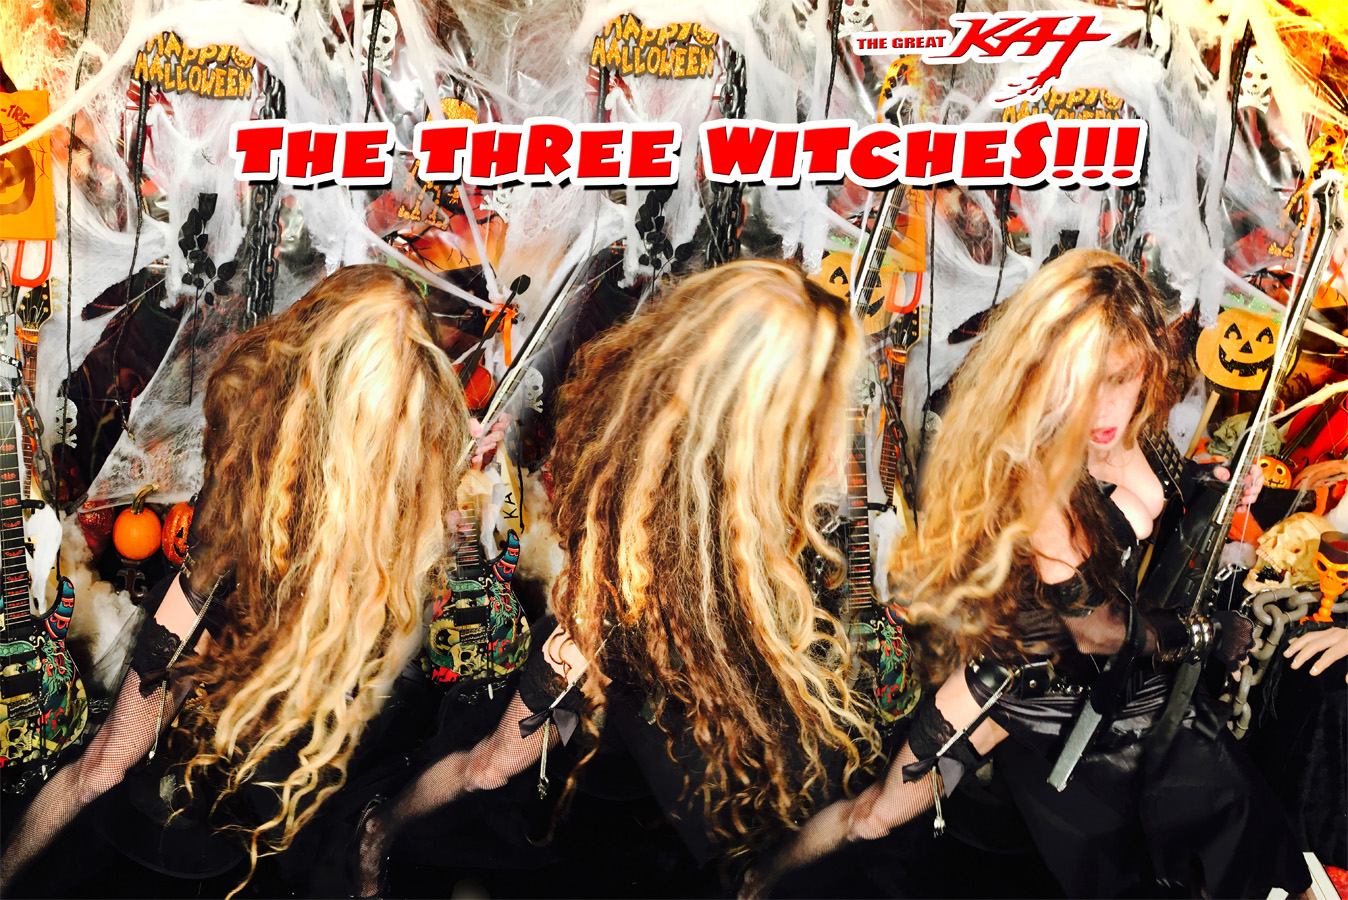 THE THREE WITCHES!